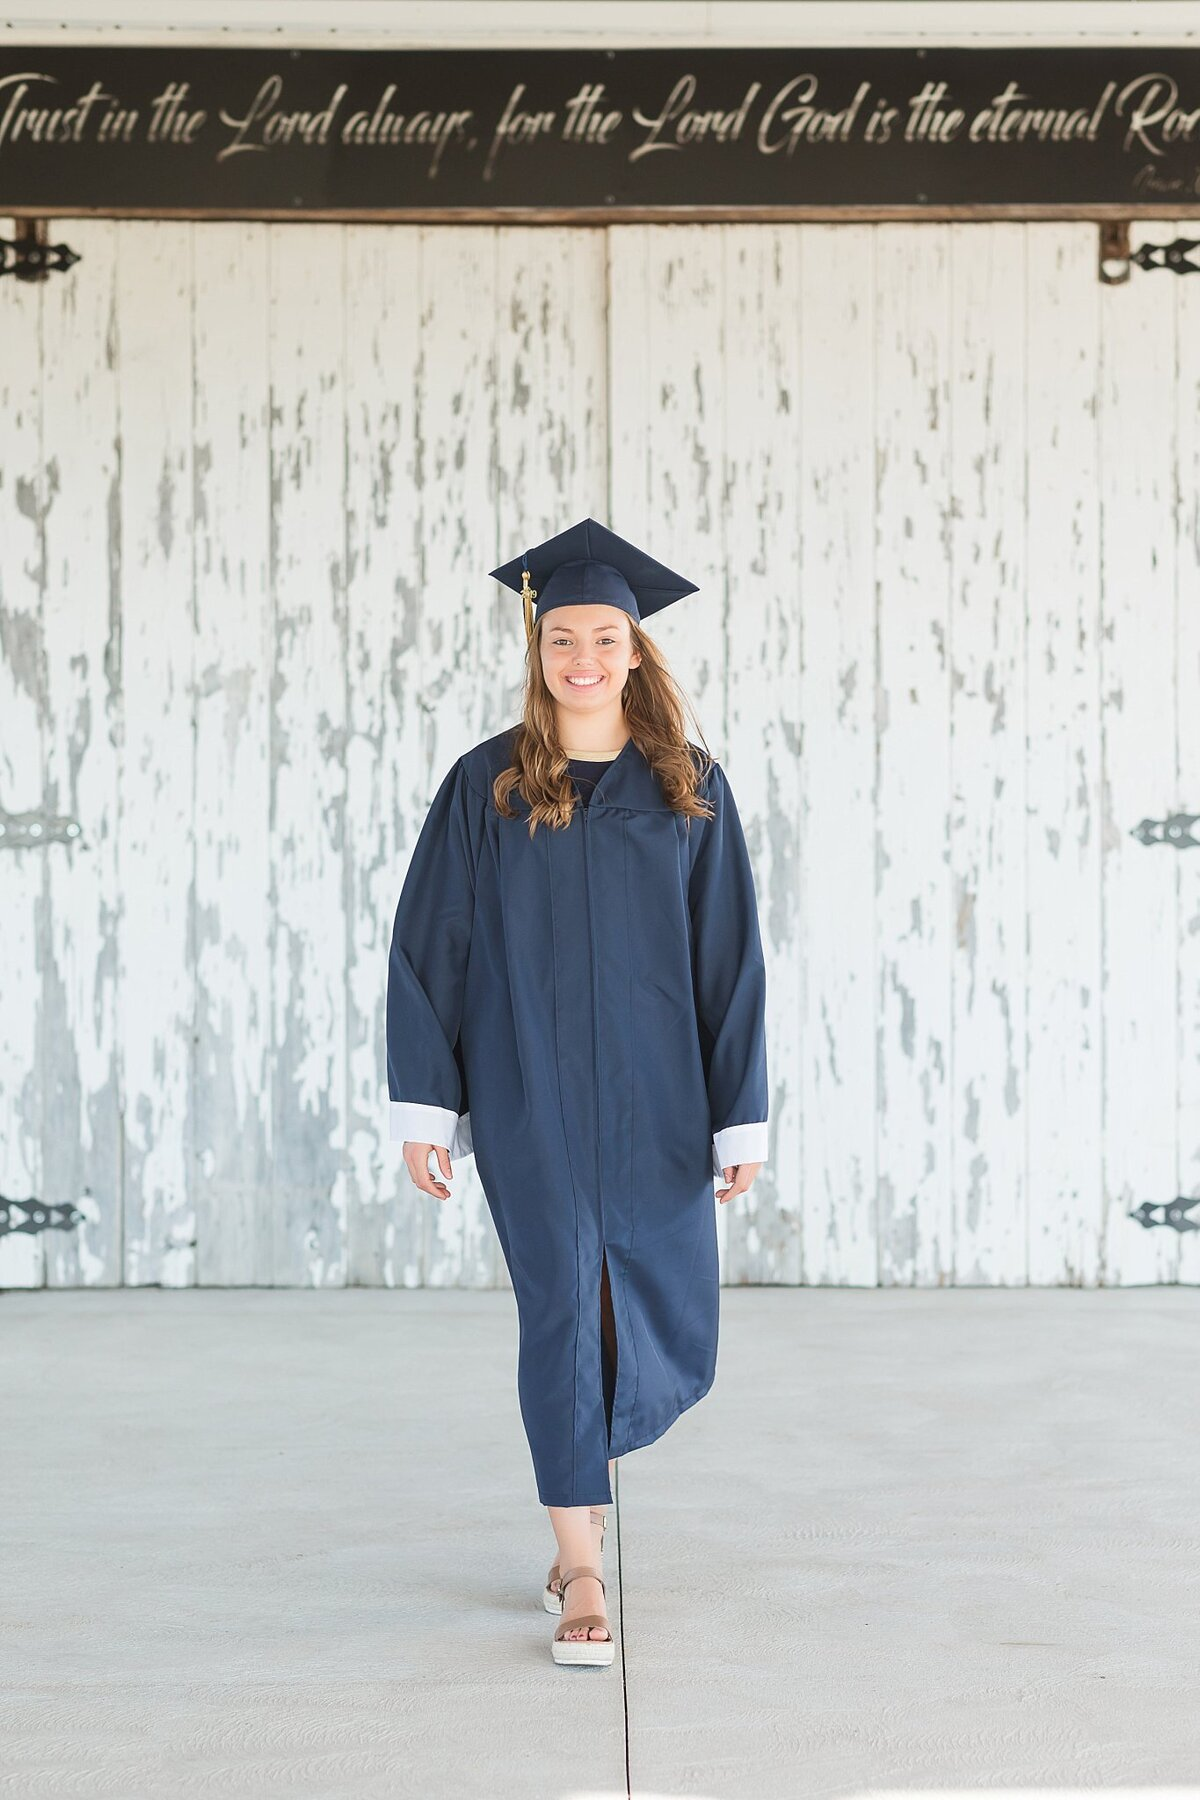 Cap and Gown Mini Sessions  photos by Simply Seeking Photography_0096